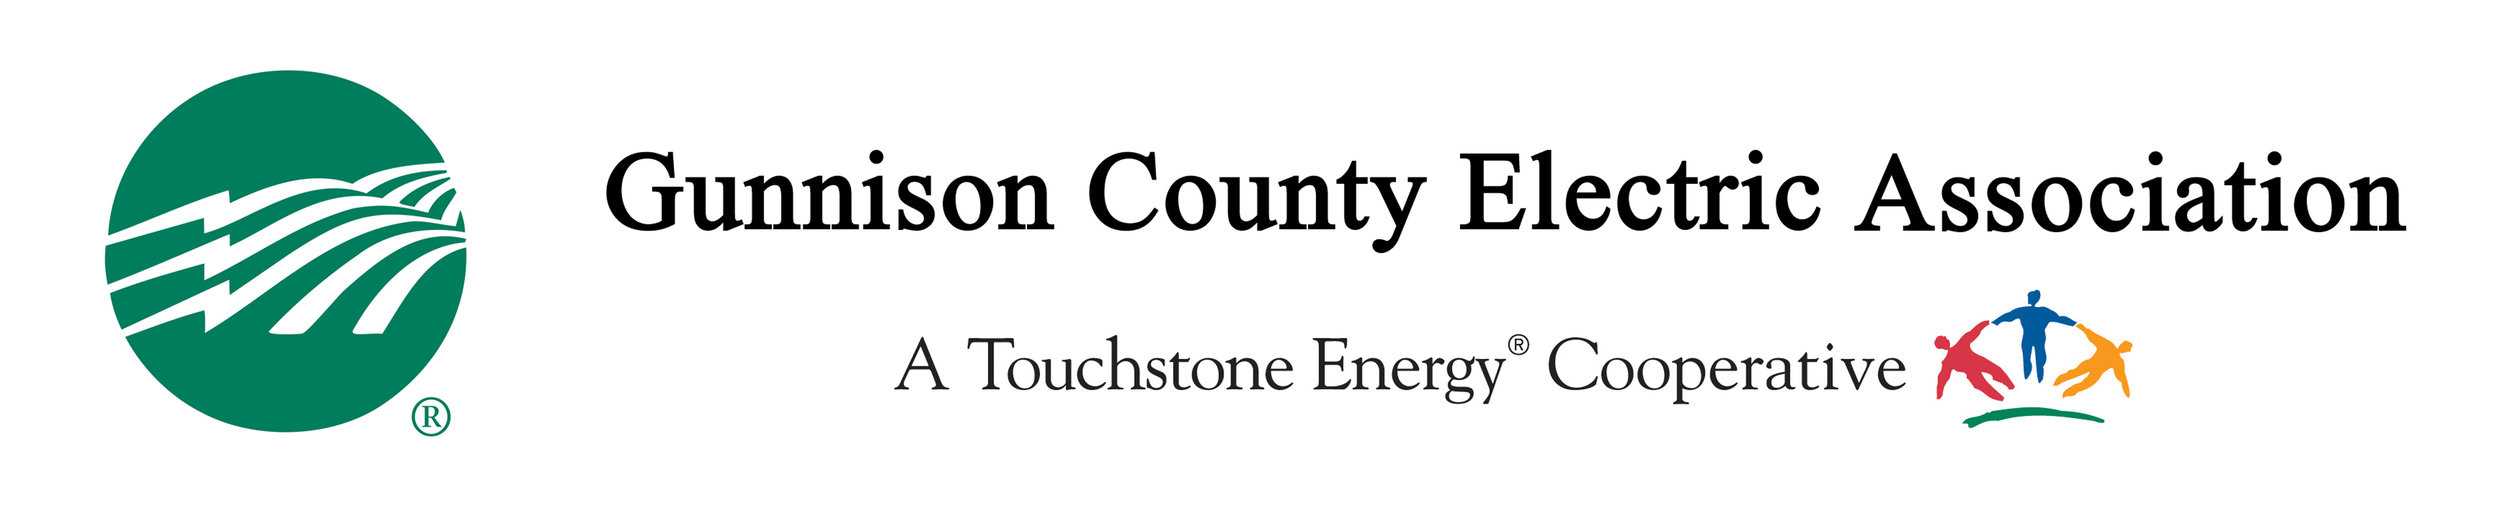 Gunnison County Electric Logo.jpg